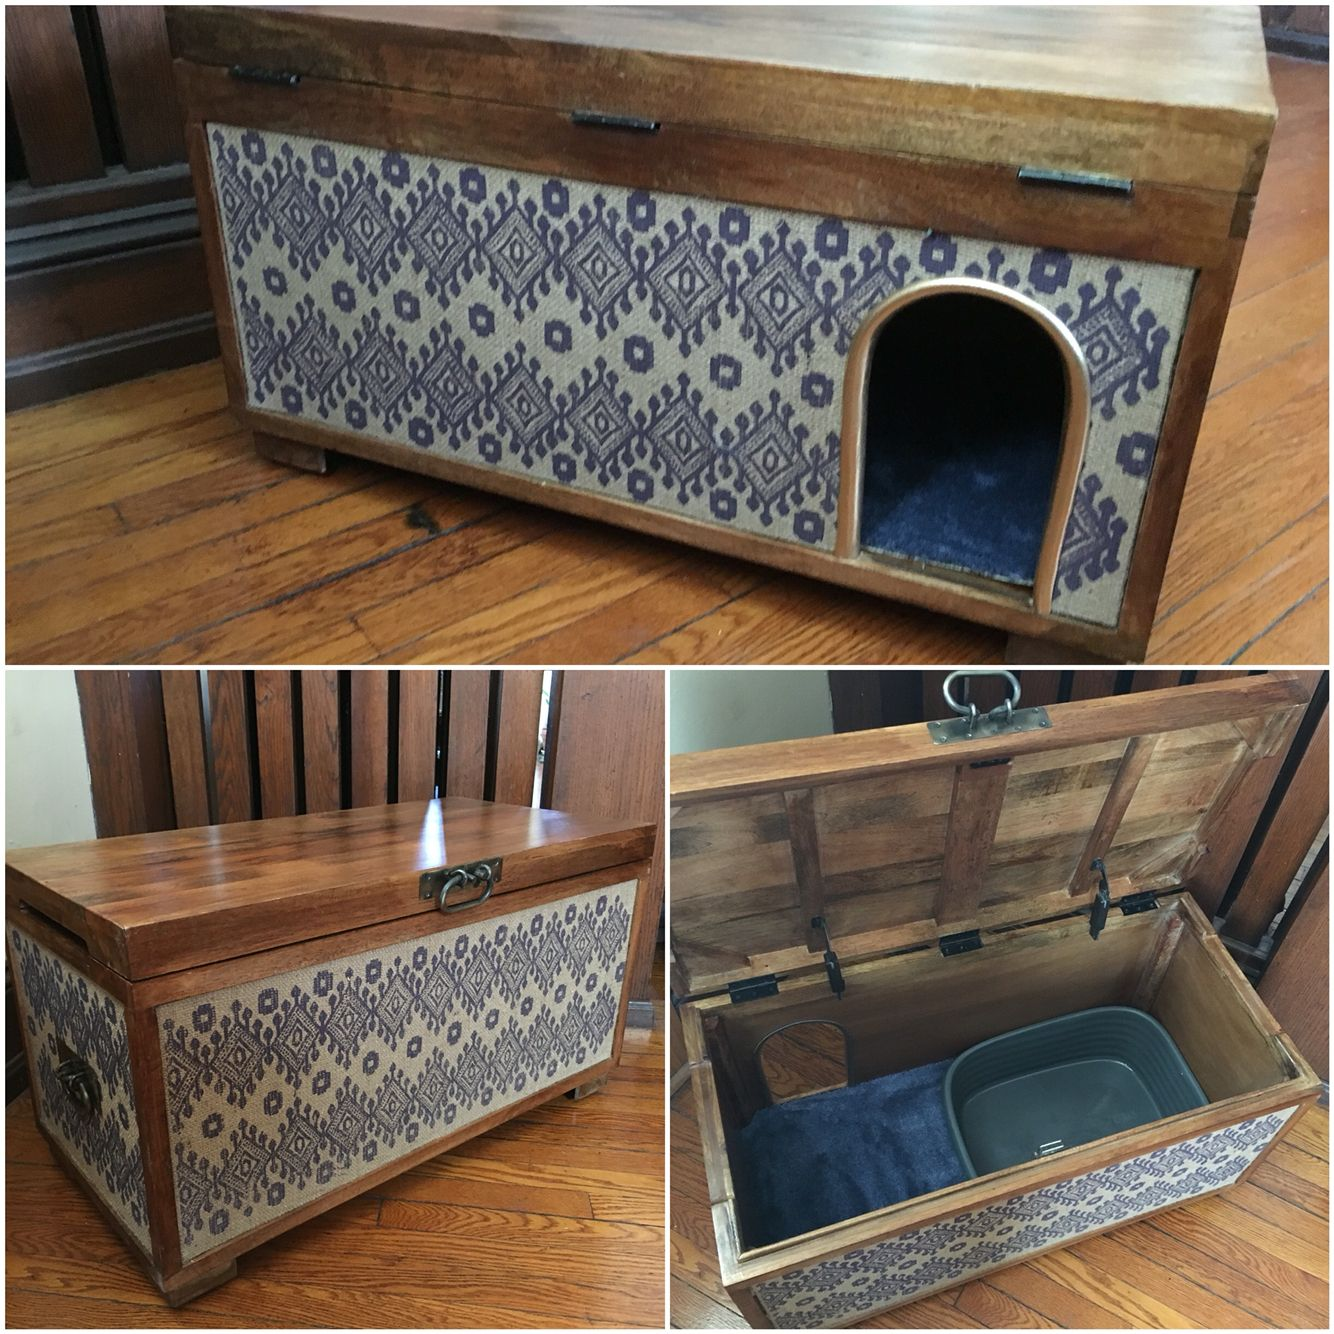 Cutest Way To Hide Cat Litter Box My Husband And I Made This